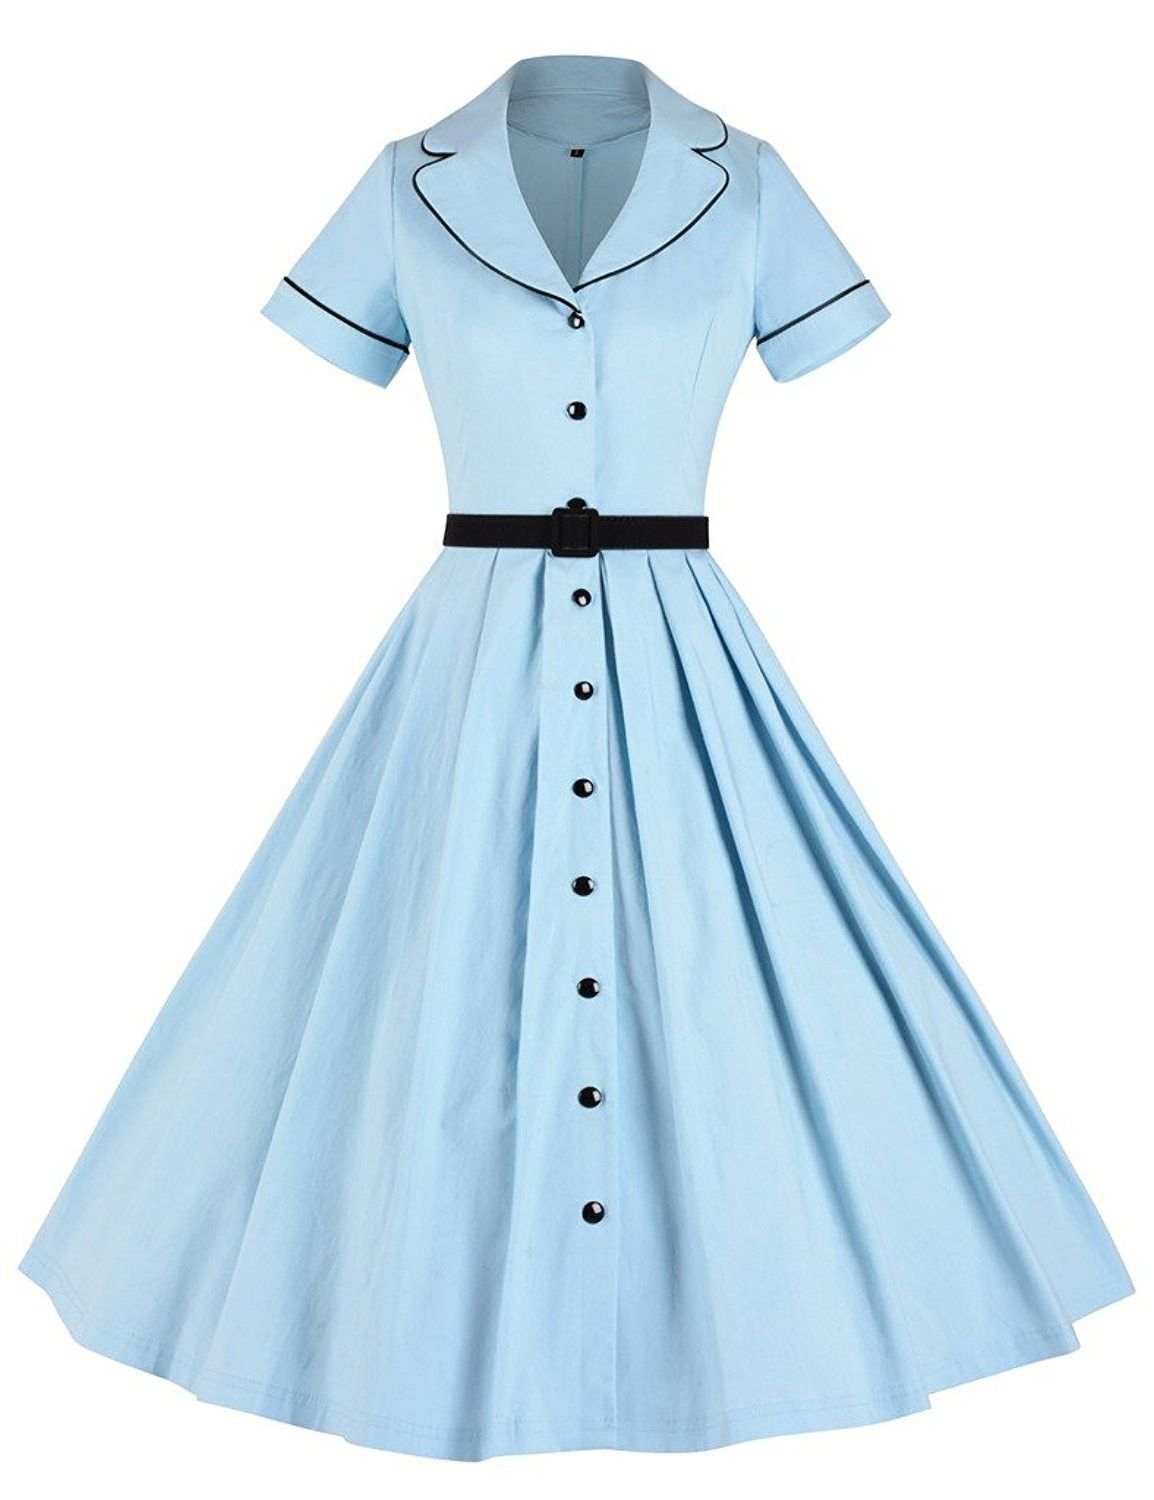 Women's Clothing, Dresses, Casual, Women's 1950sVintage Classical Casual Swing A... 1